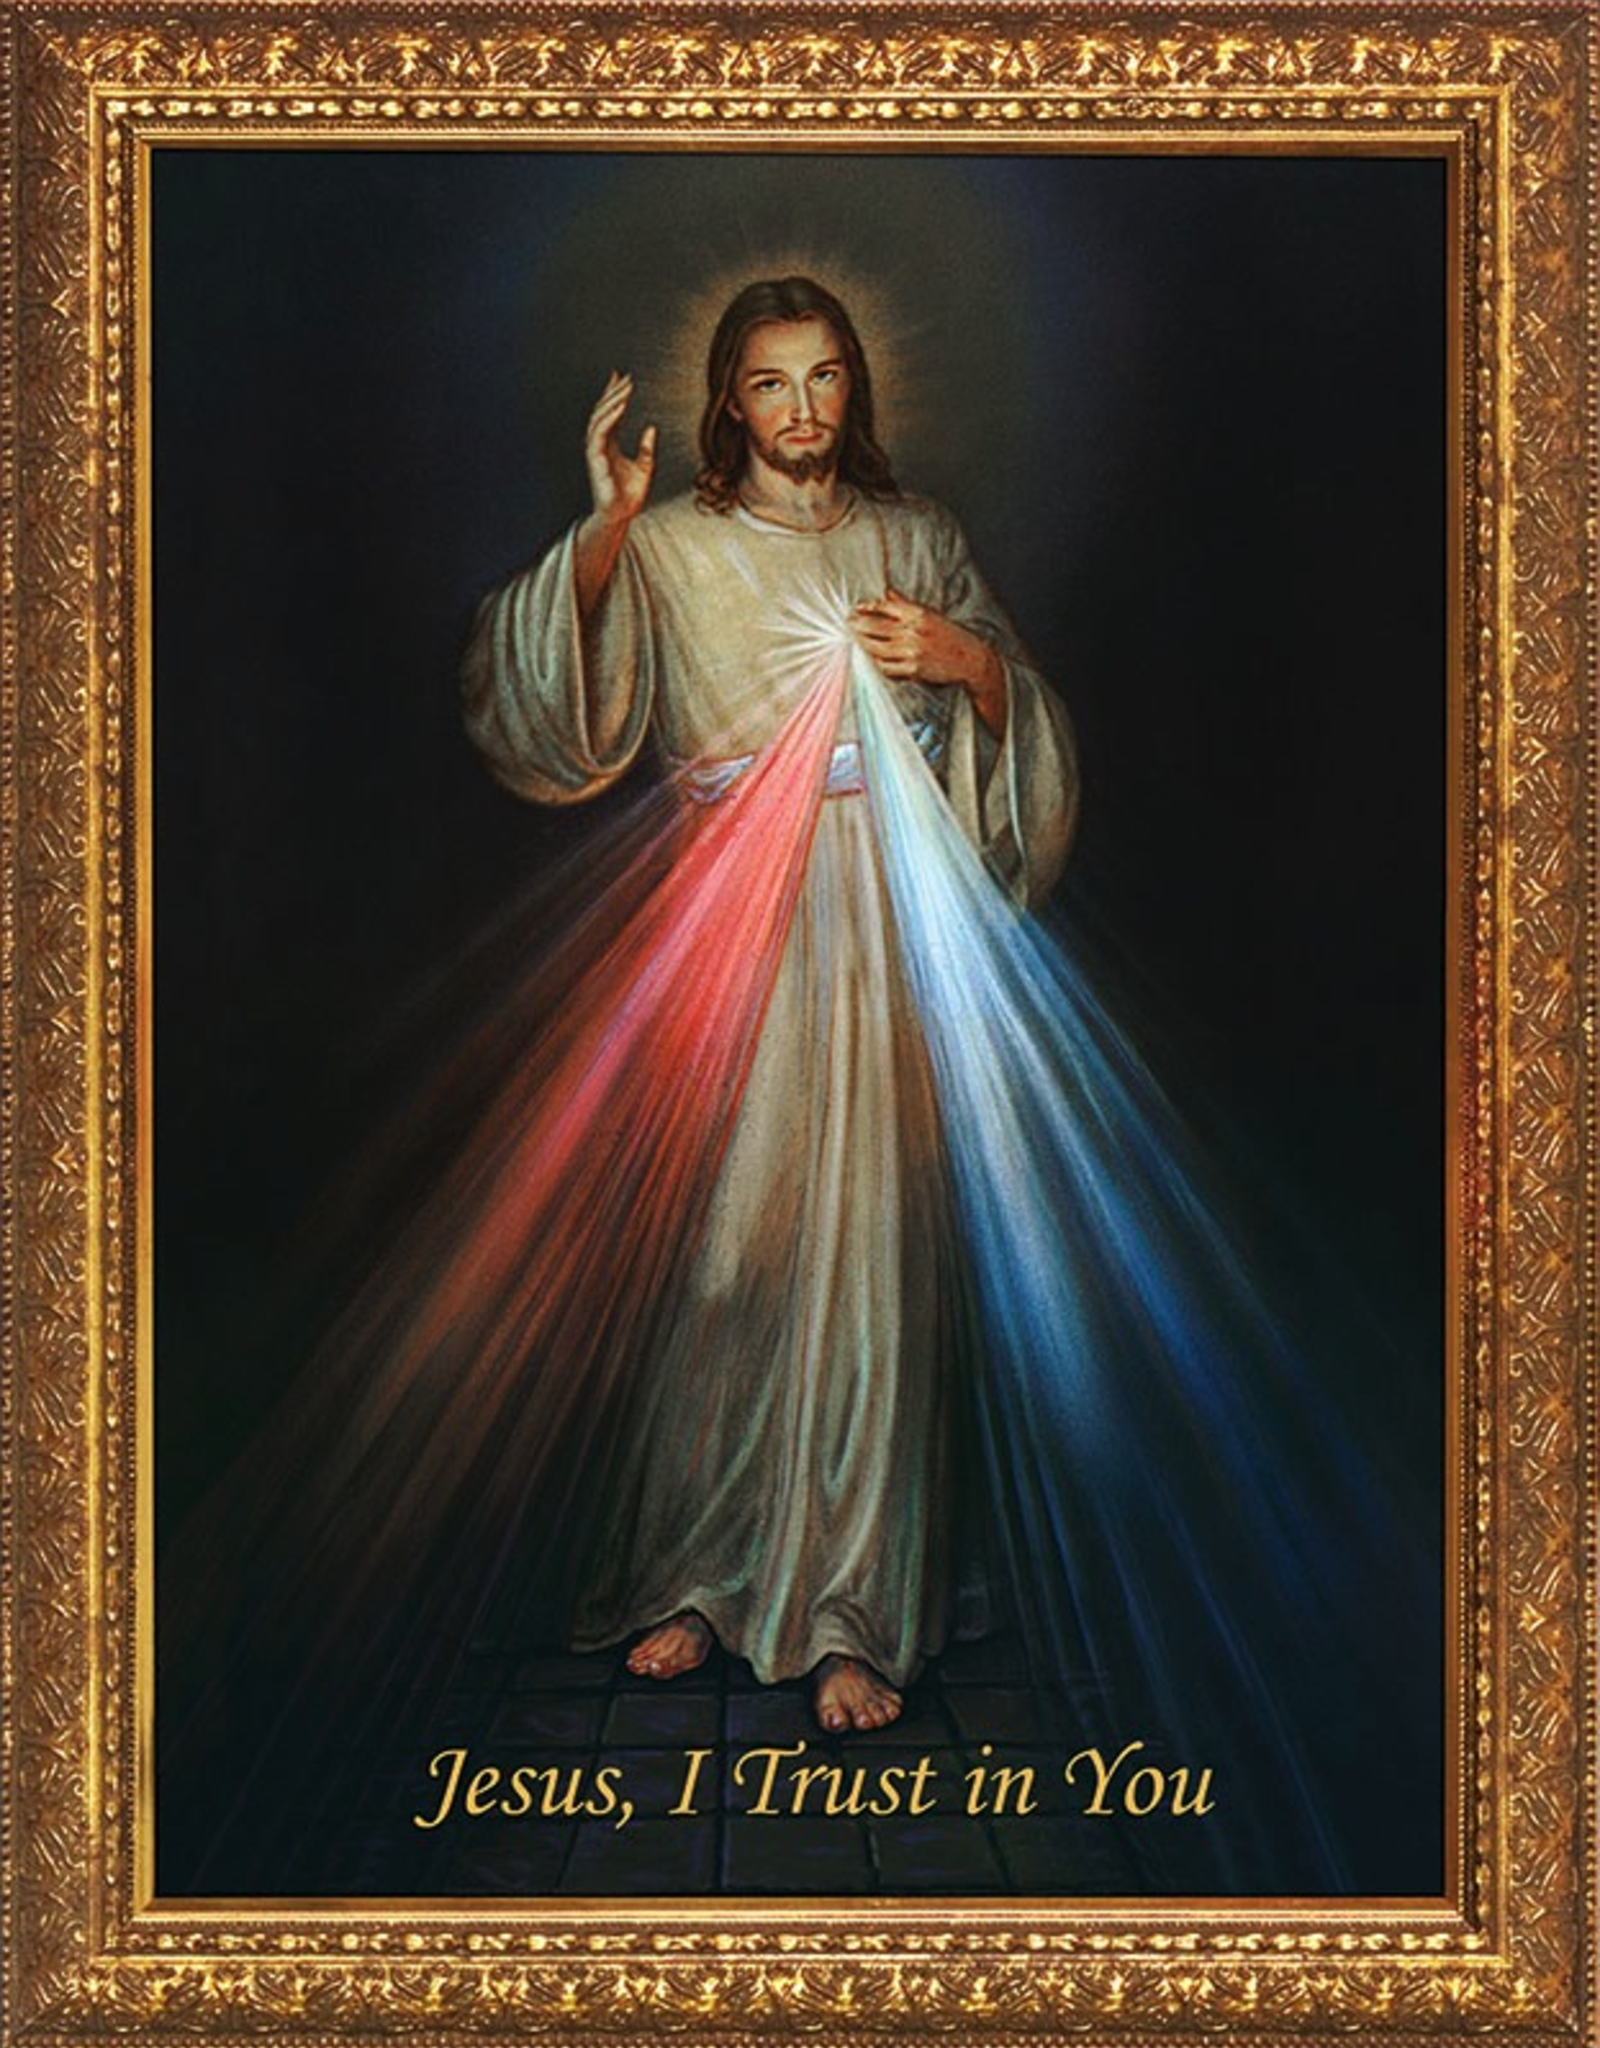 Nelson/Catholic to the Max Divine Mercy Framed Image in Standard Gold Frame 8x10""